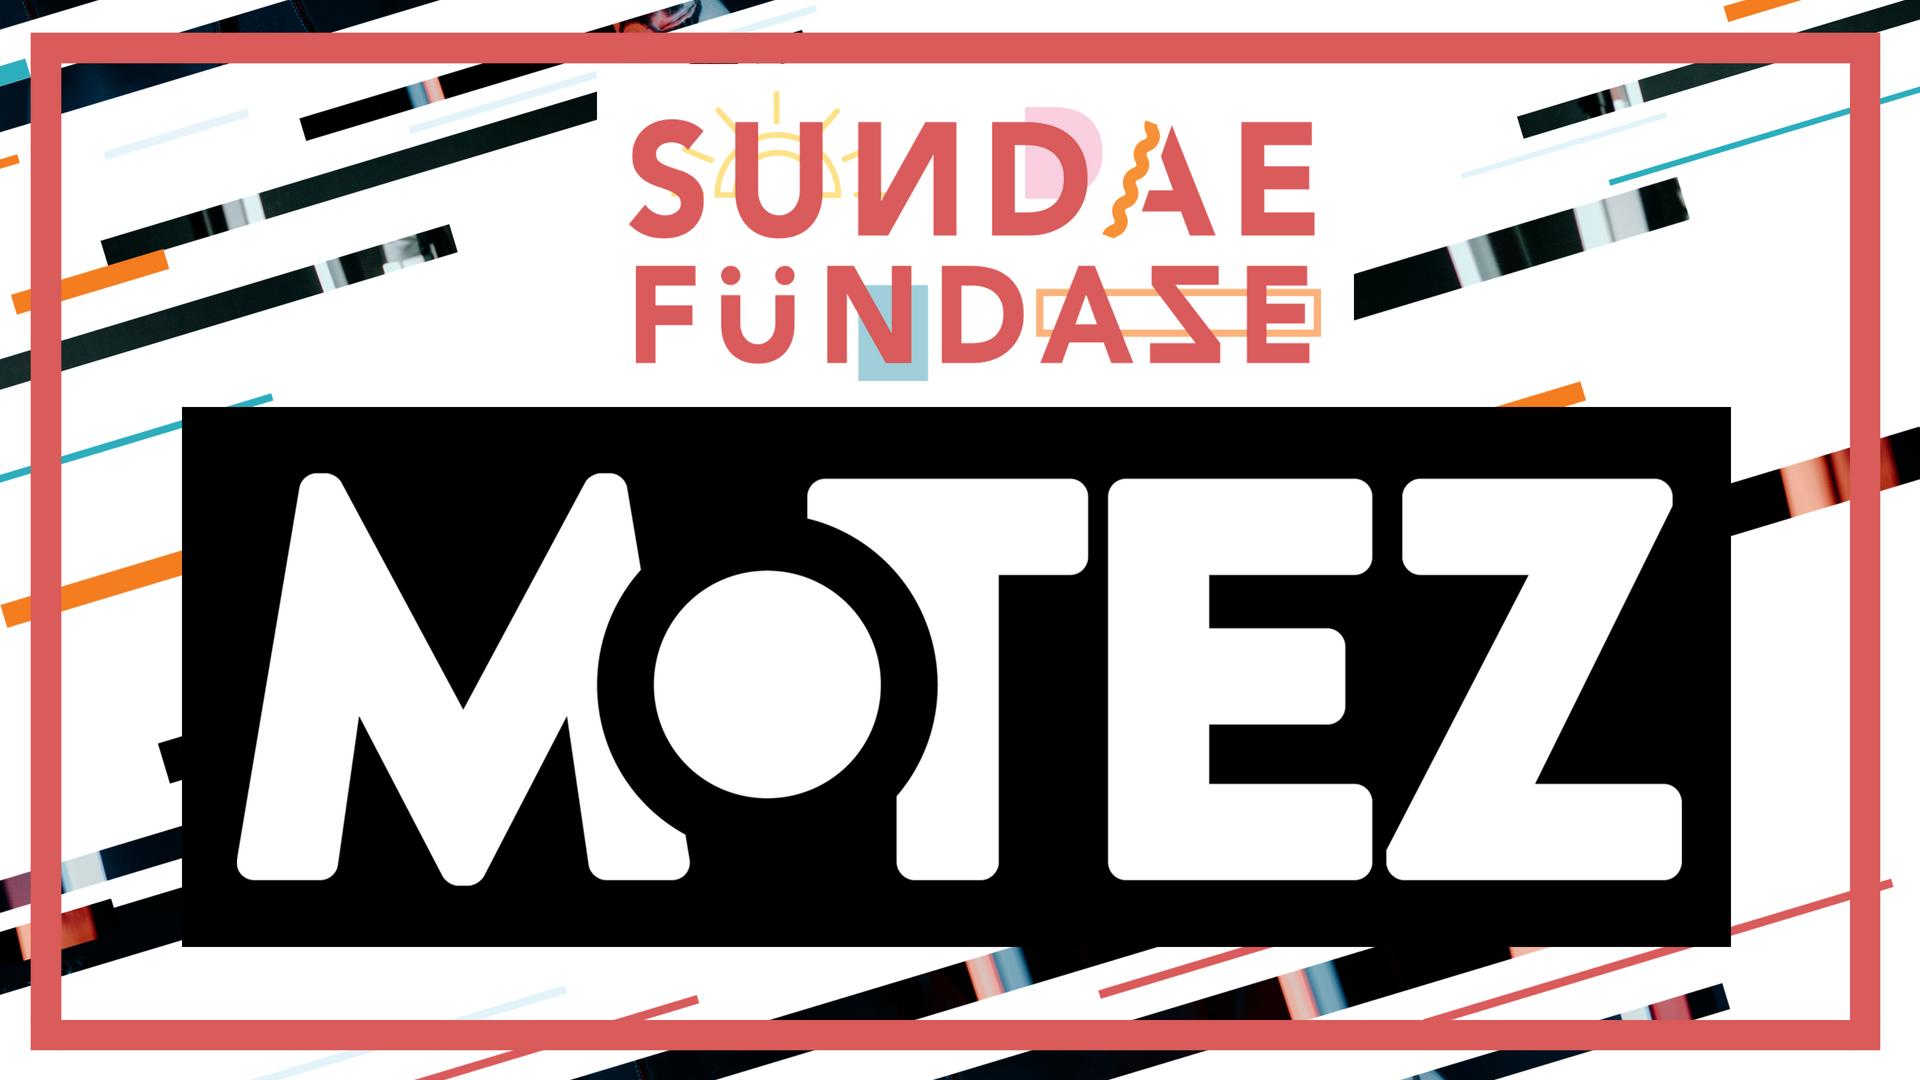 Tickets for Sundae Fundaze feat. Motez in Newcastle from Ticketbooth